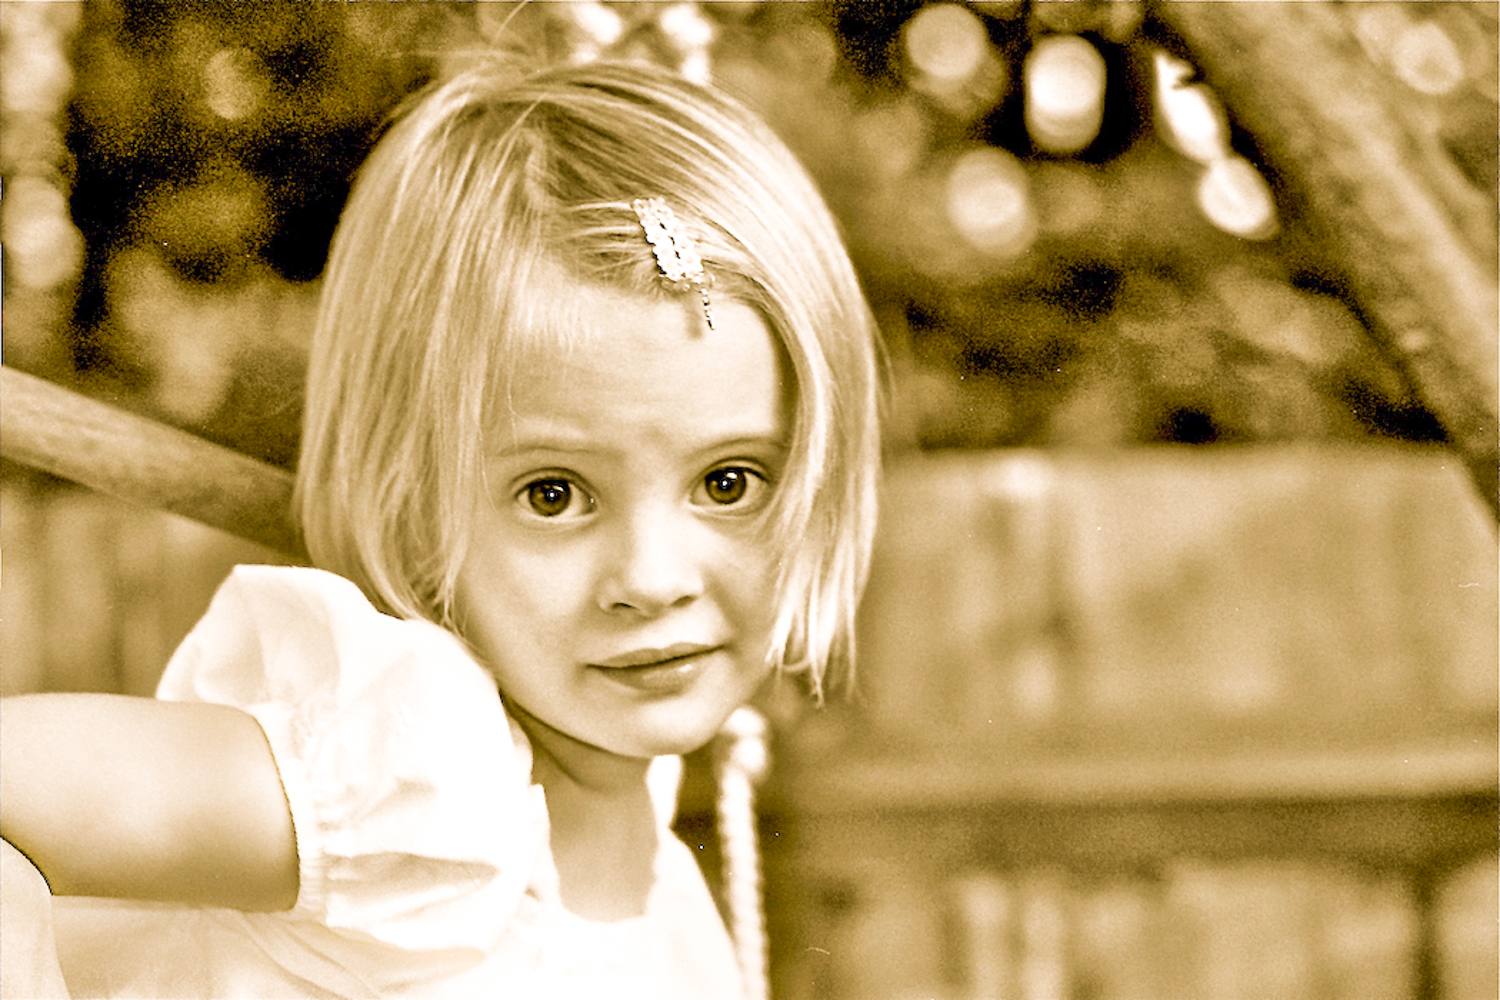 sepia image of young girl with short blond hair with a clip in her hair looking at camera